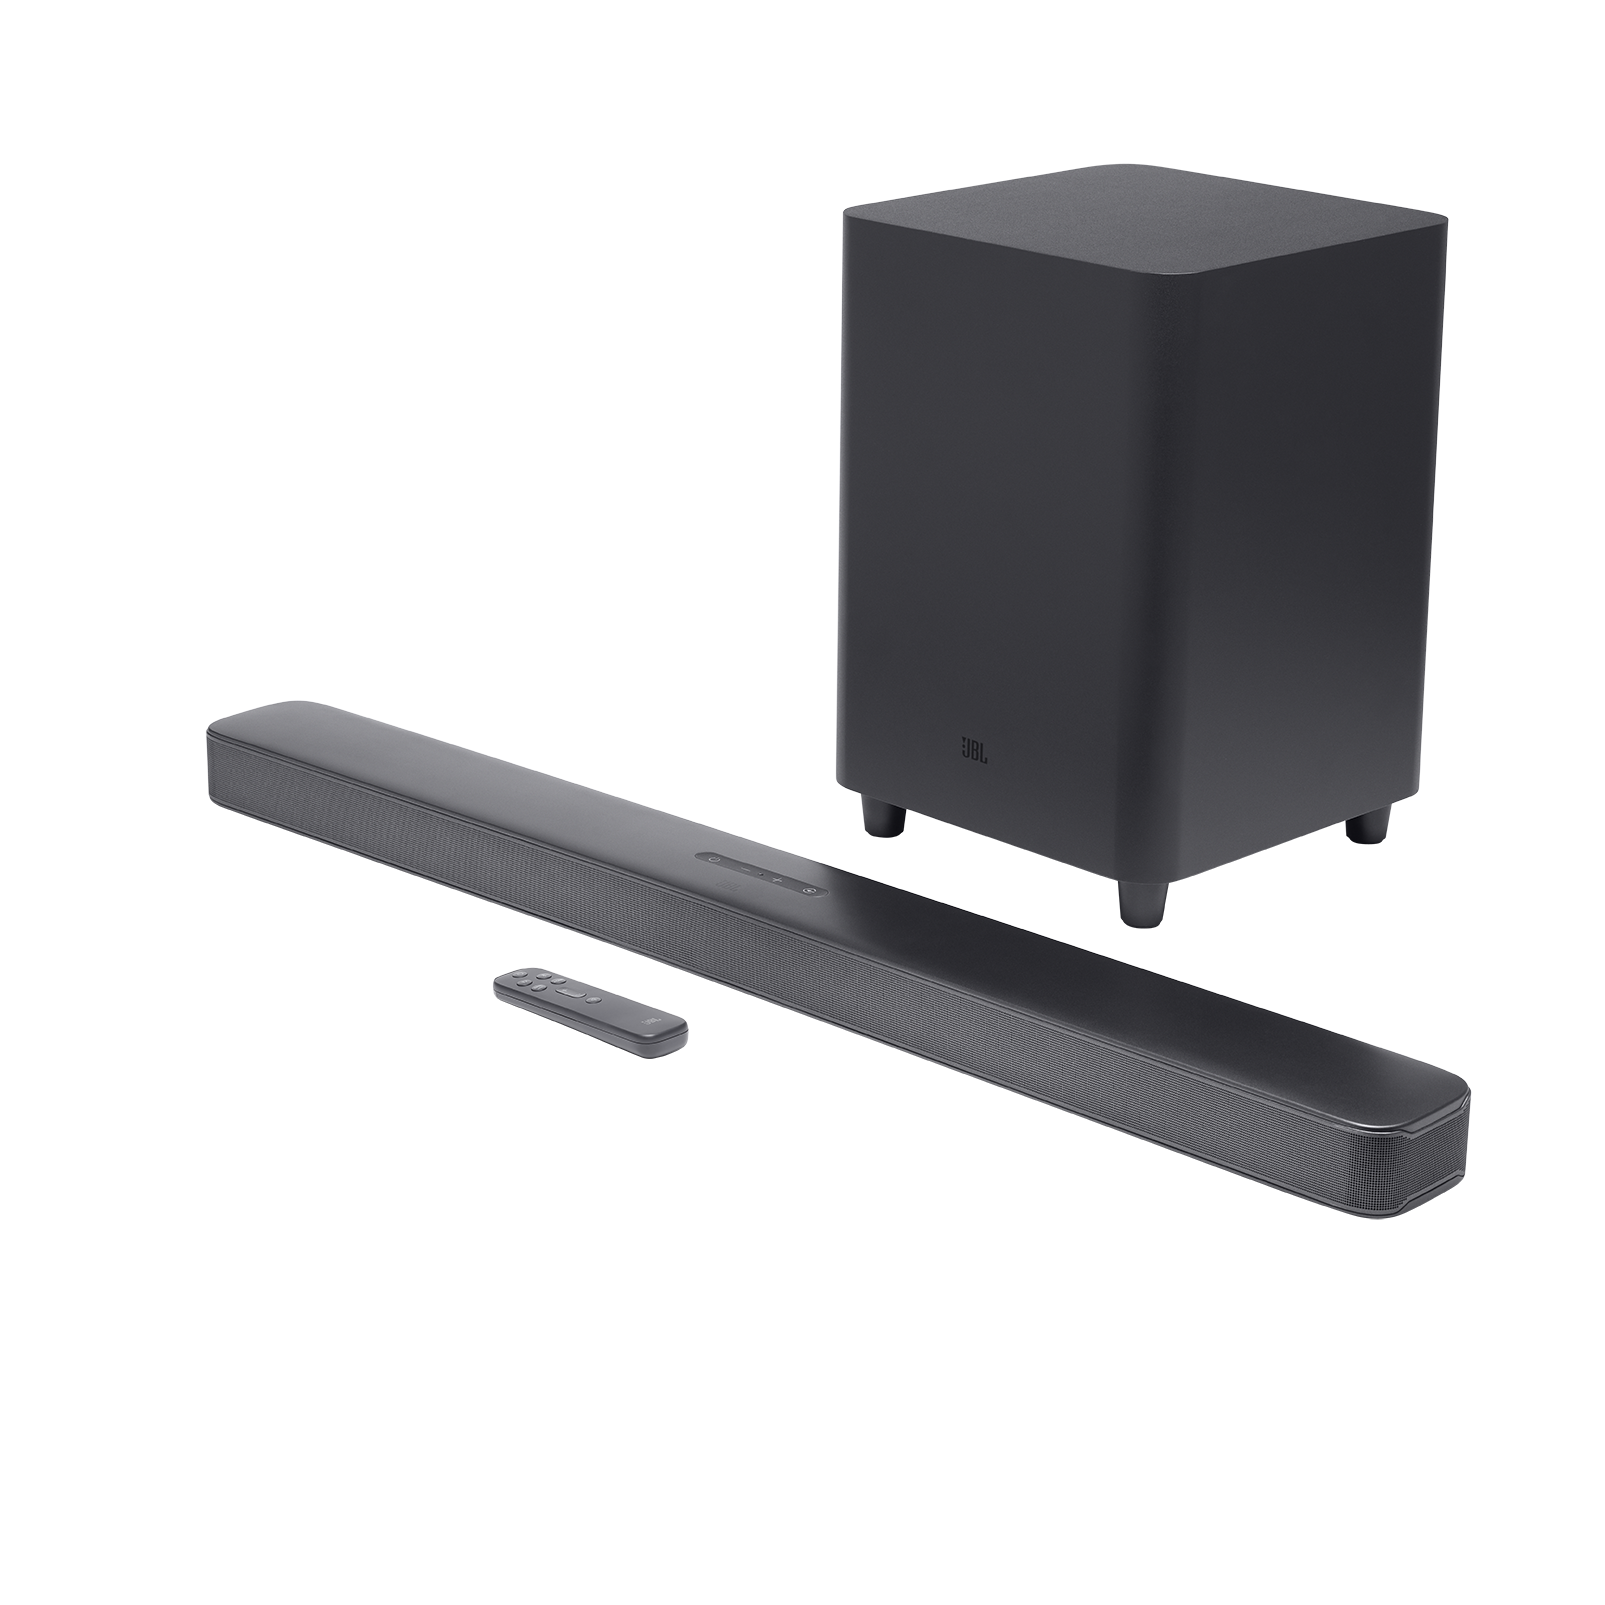 JBL Bar 5.1 Surround - Black - 5.1 channel soundbar with MultiBeam™ Sound Technology - Hero